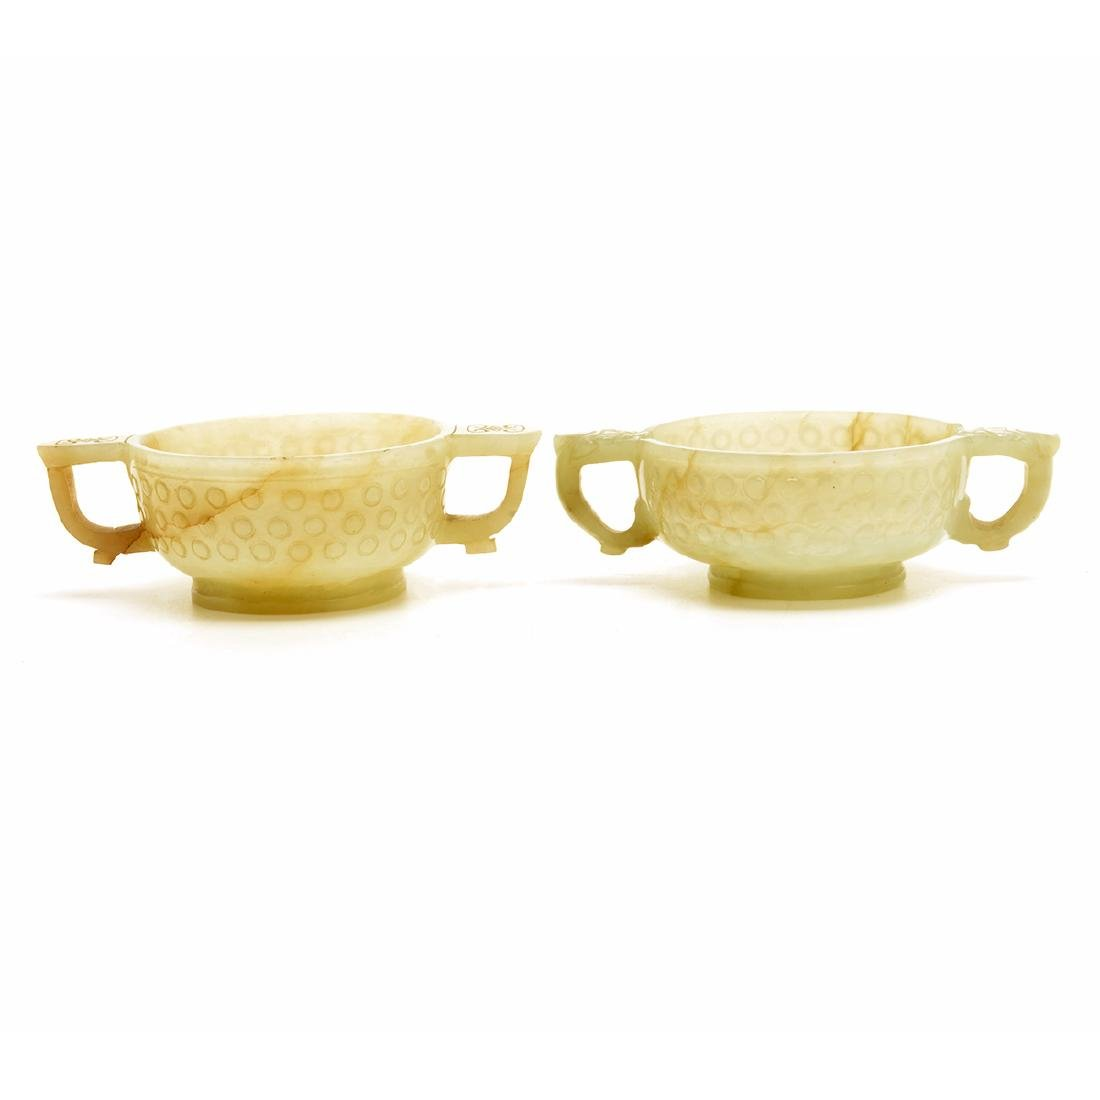 Two Jade Libation Cups, 18th Century